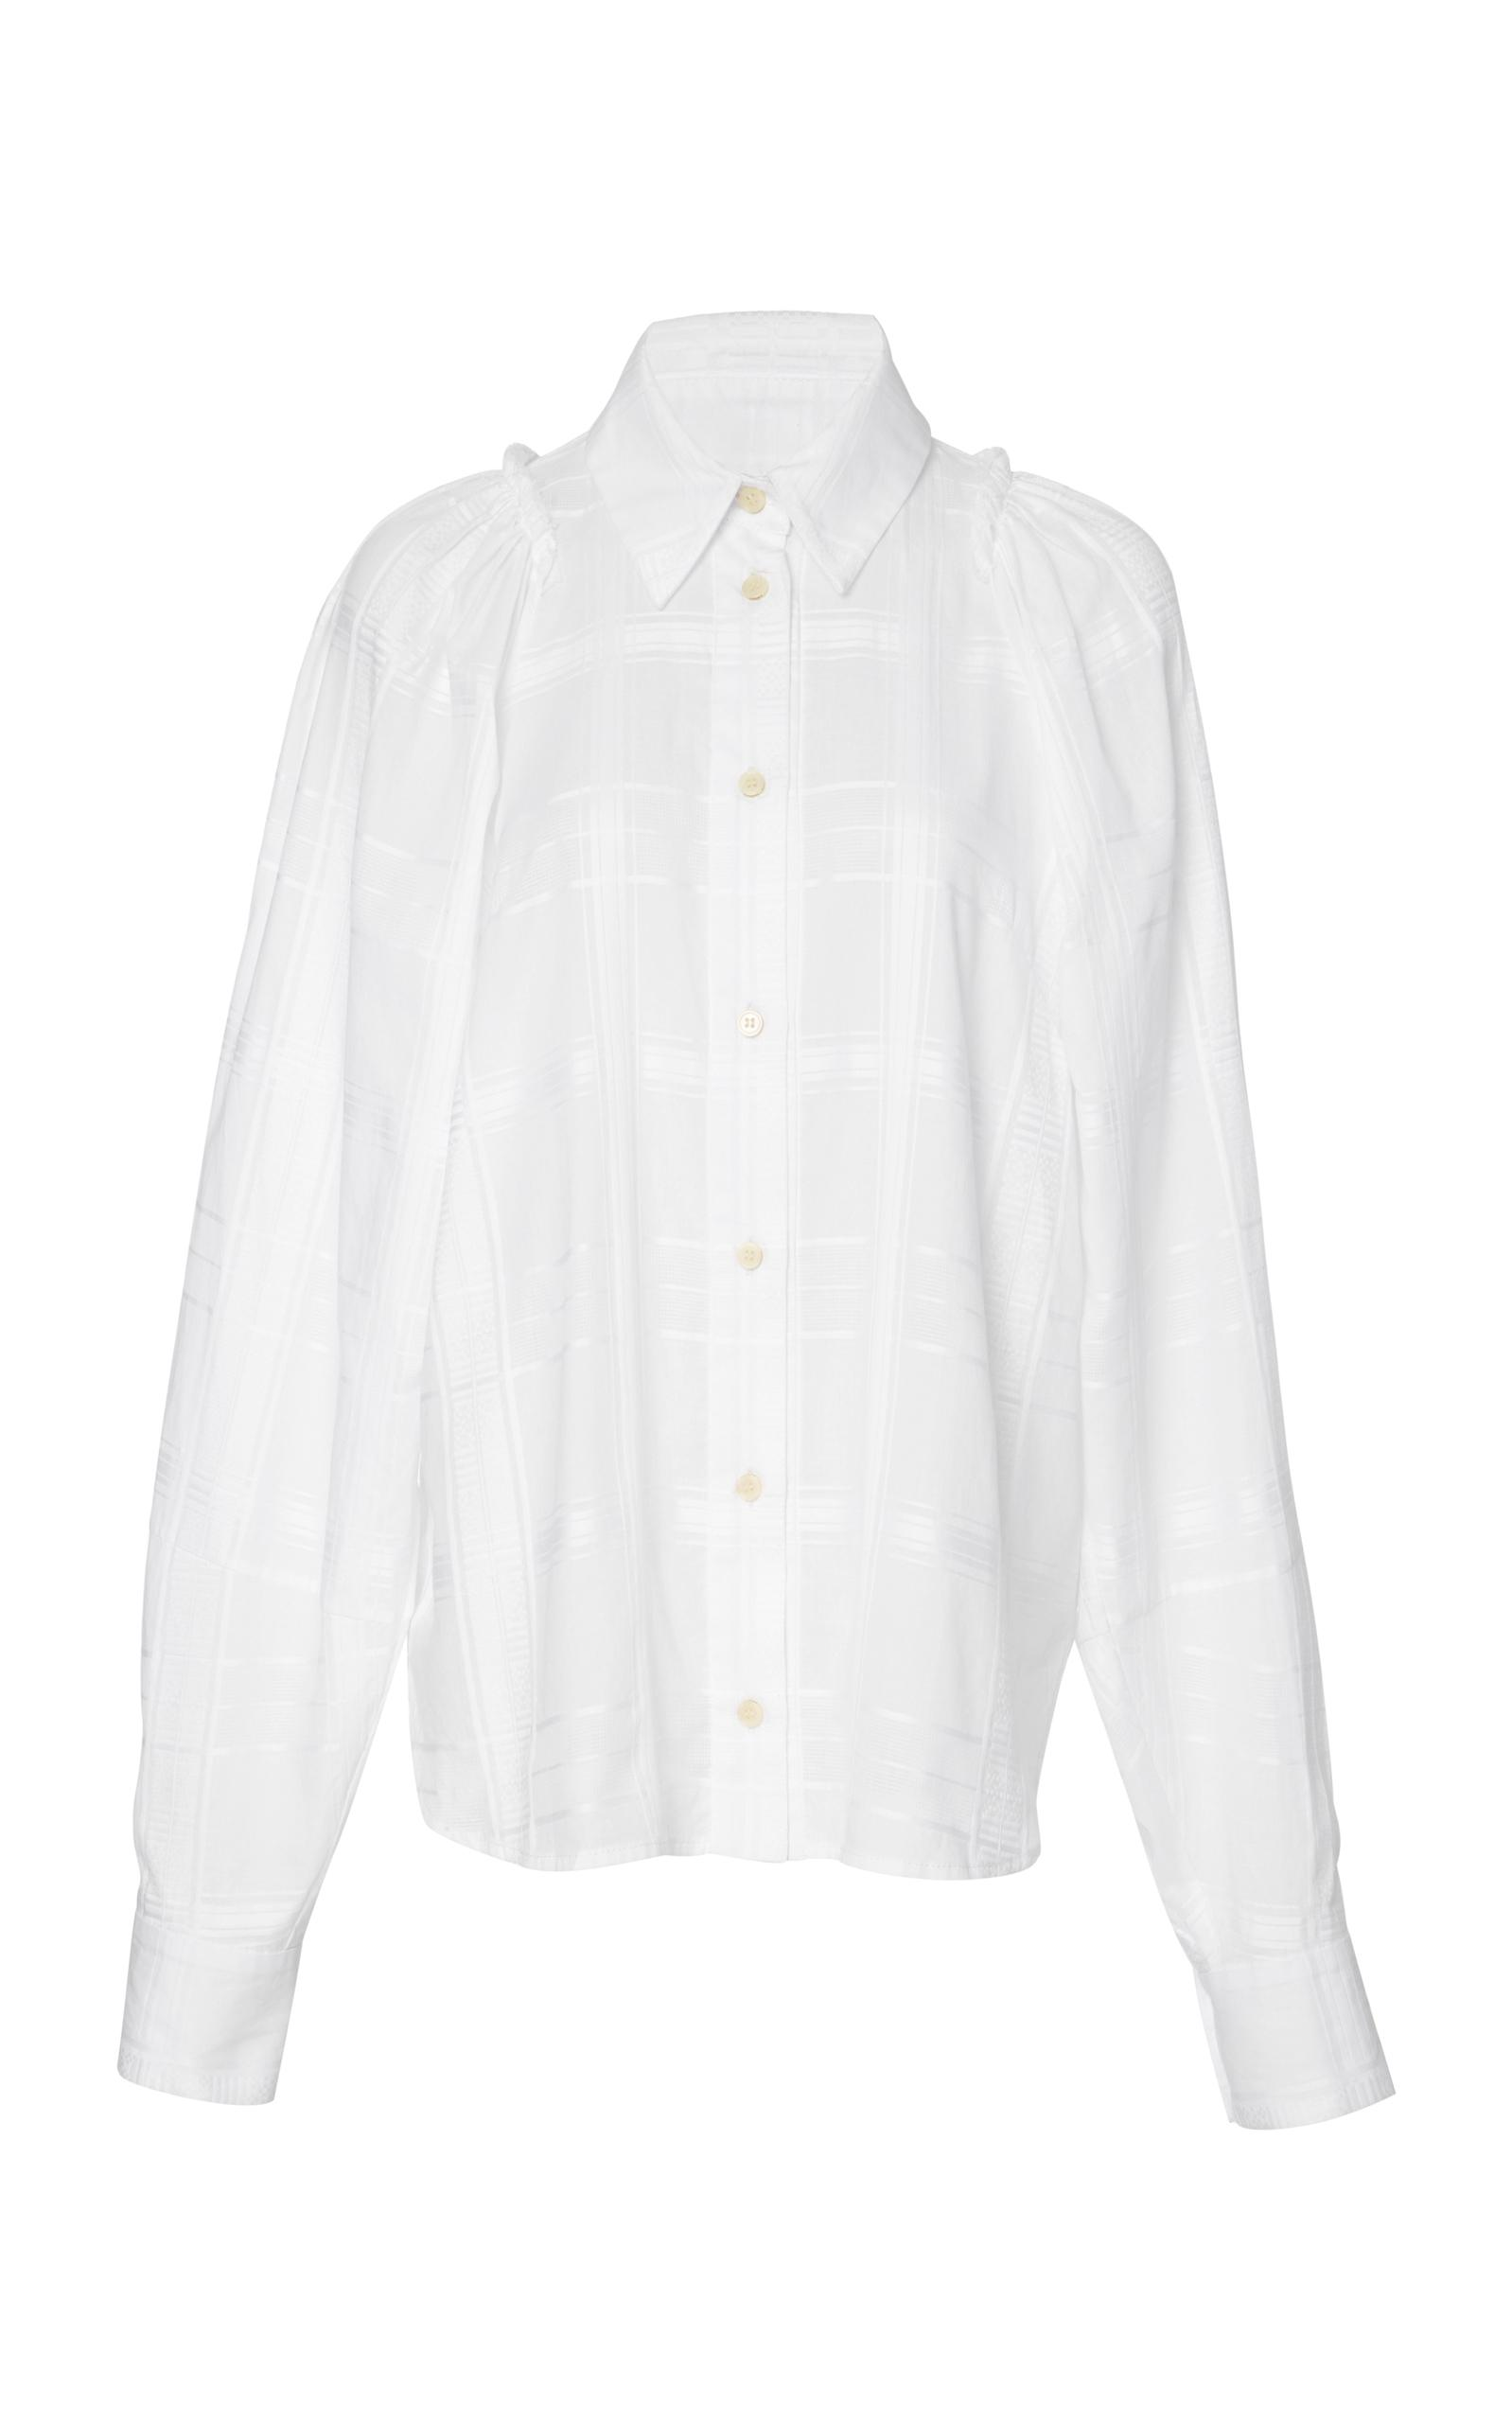 7db081b649a Lyst - Rachel Comey Expanse Button Down Top in White